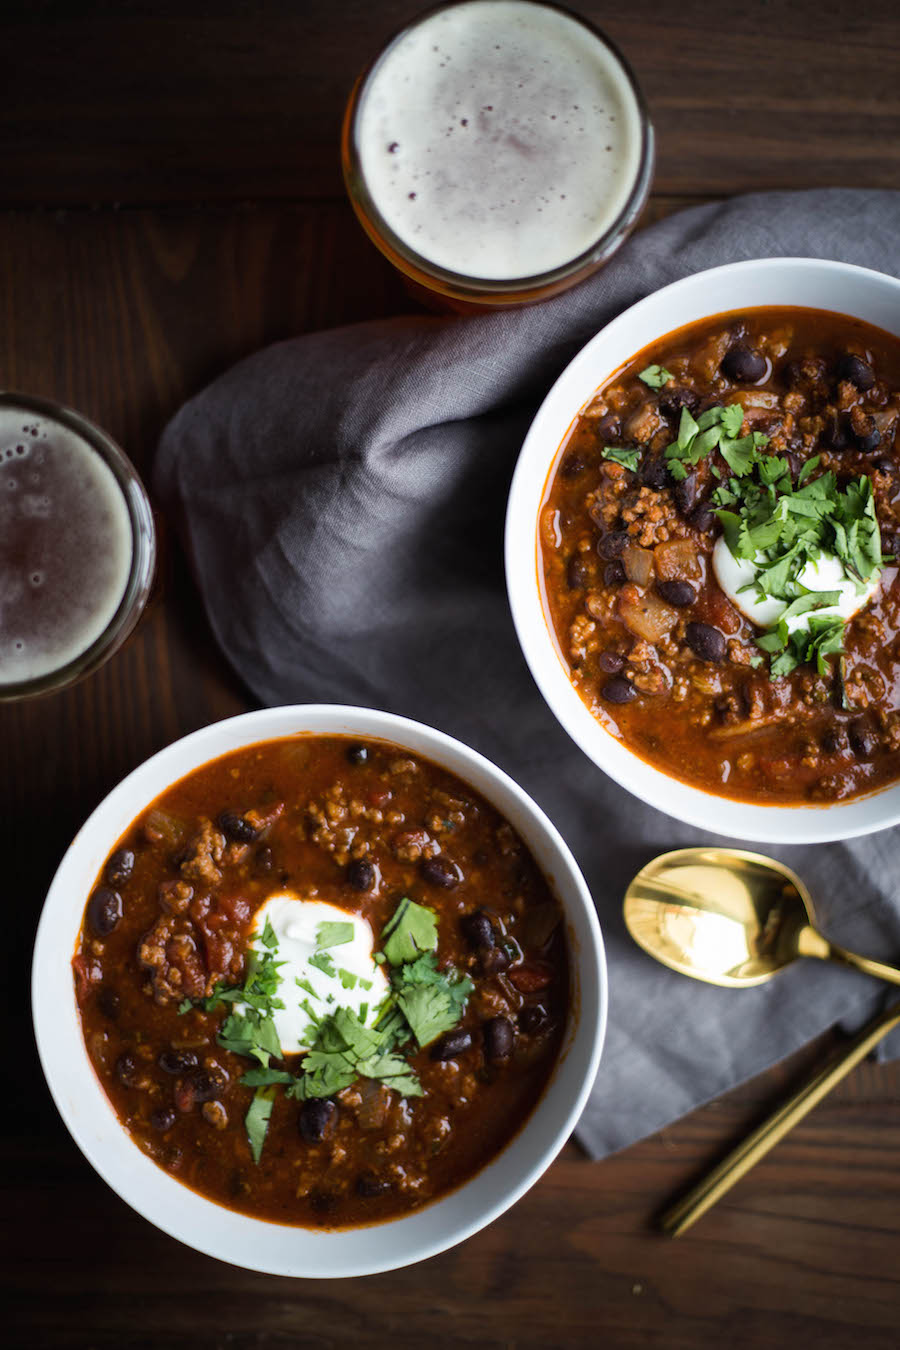 Bowl of Beer Chili